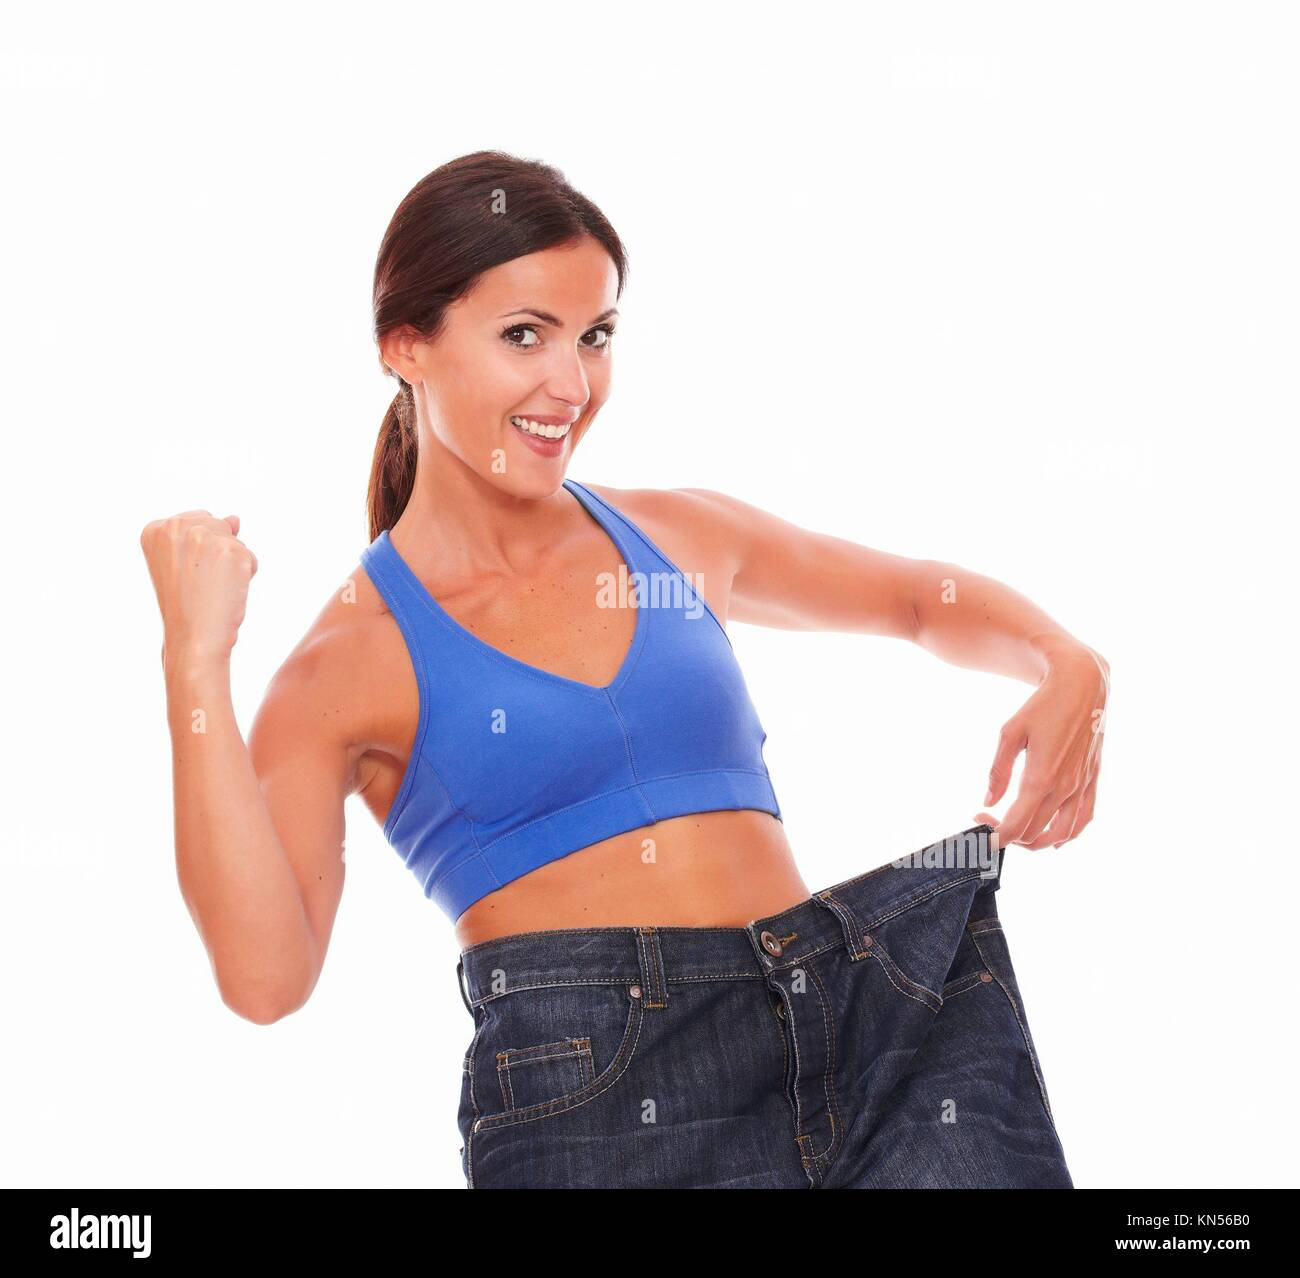 Hispanic brunette cheerfully pulling her jeans to measure waist on isolated background. - Stock Image